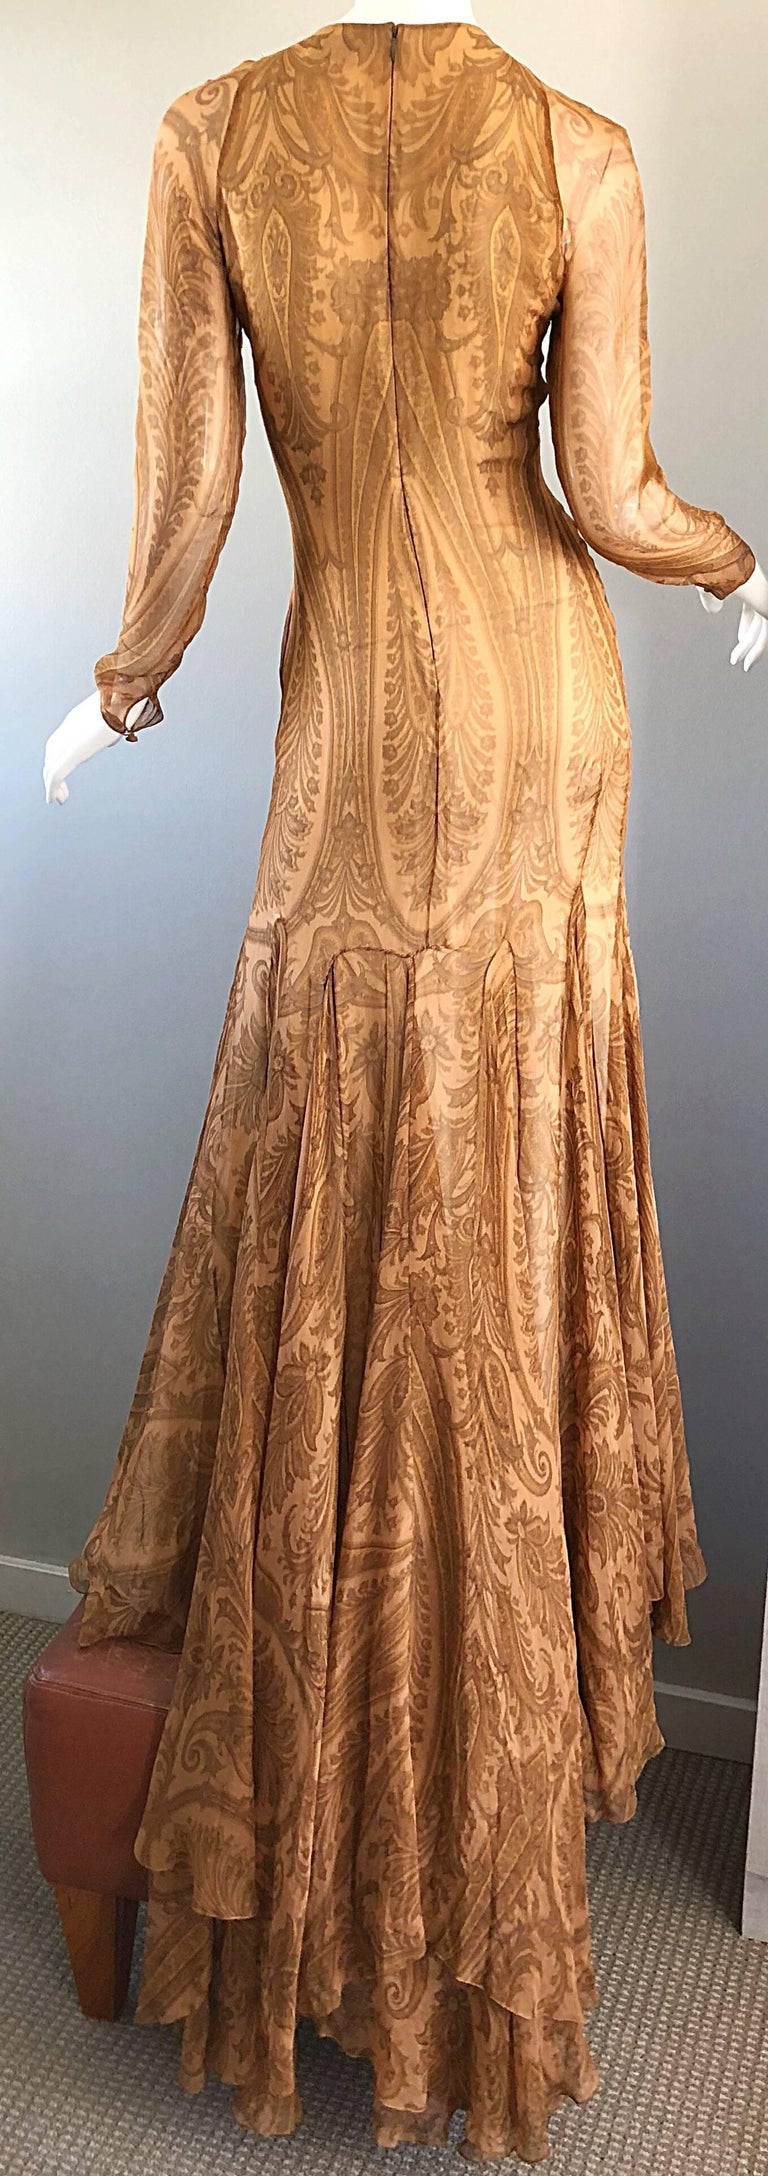 Sensational 1990s Bill Blass Couture Nude Silk Chiffon Paisley Vintage 90s Gown  For Sale 13